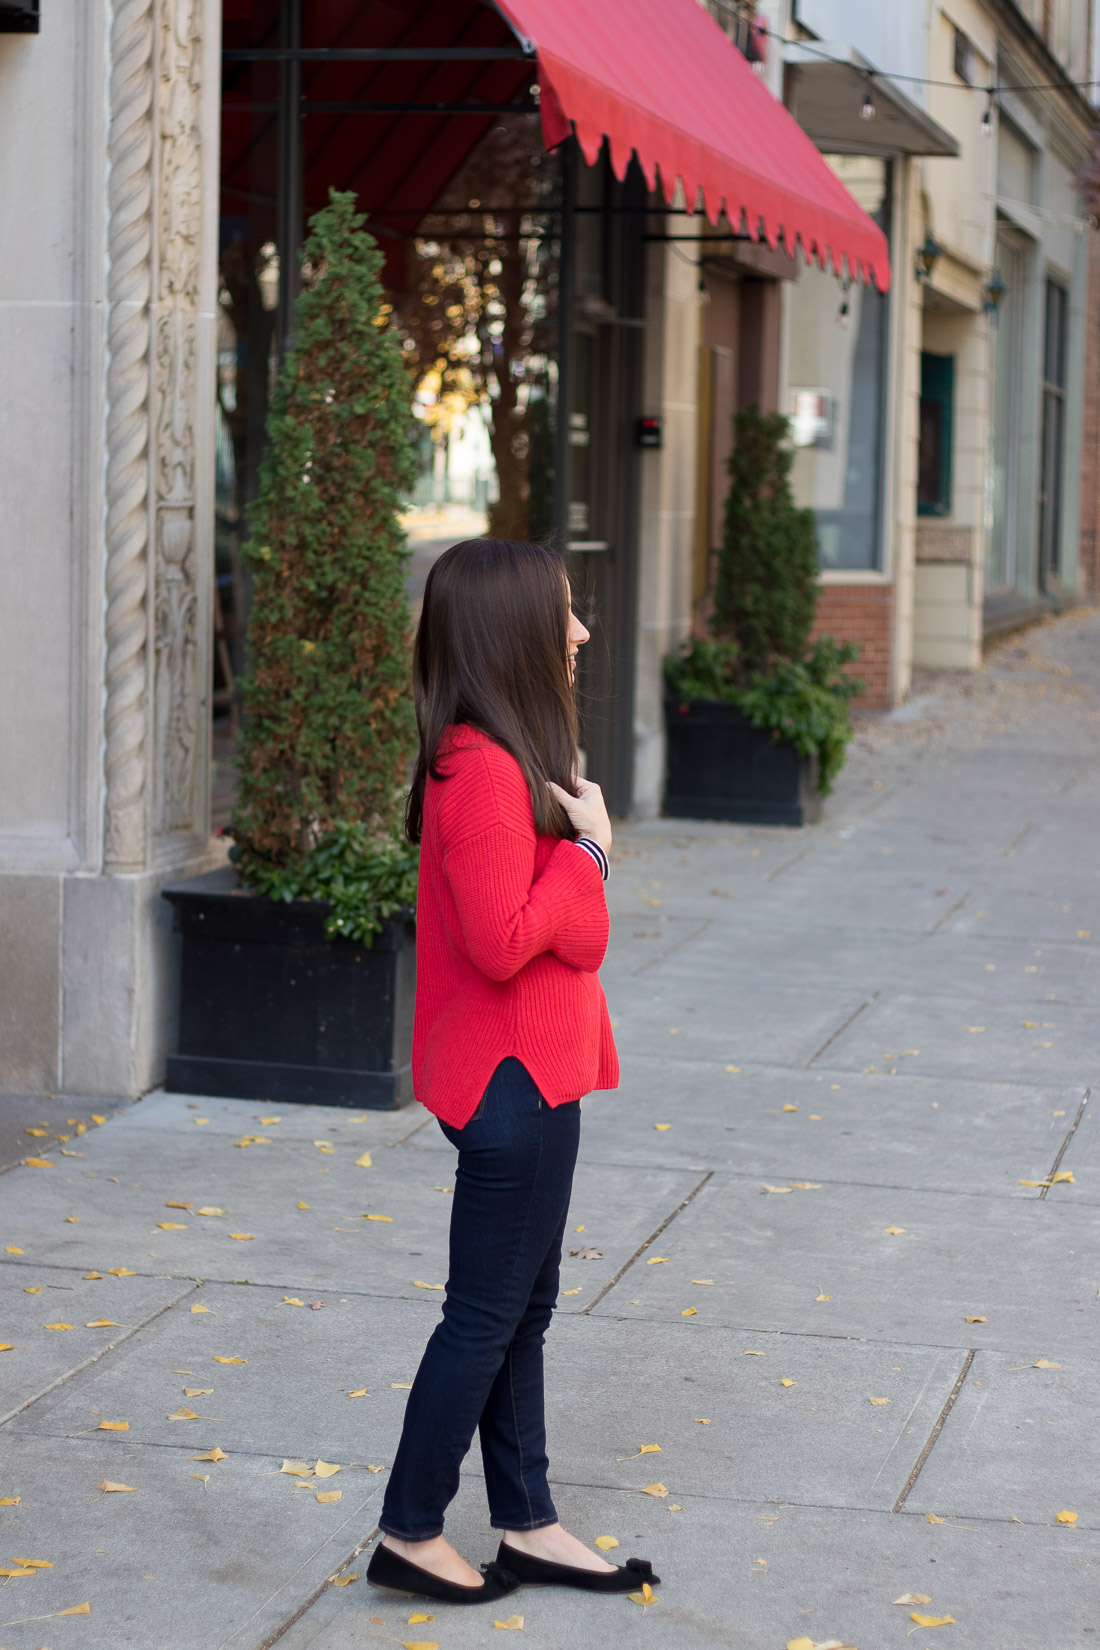 LOFT Red Sweater with J. Crew Factory Denim and J. Crew Lottie flats in suede